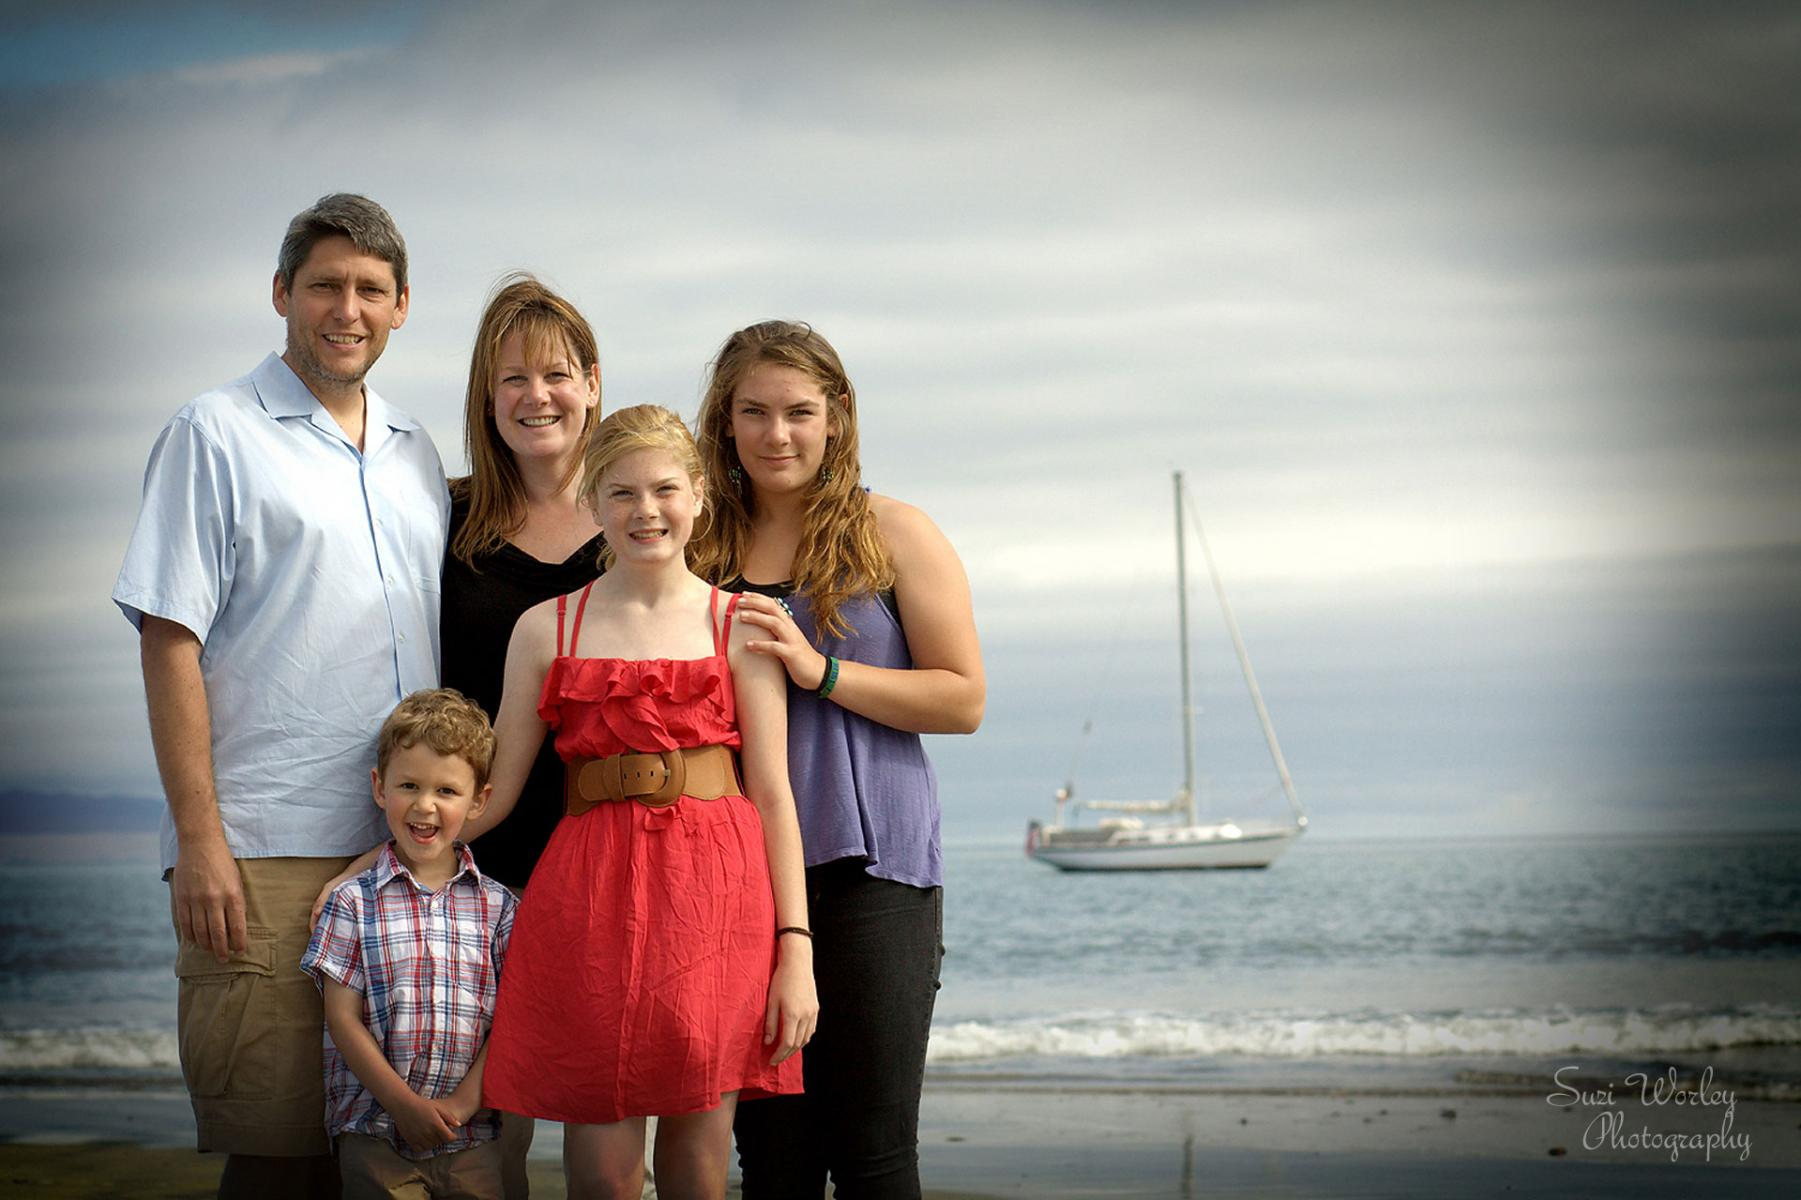 Fun family session at Pismo Beach. #family #portraits #beach #sailboats #SuziWorleyPhotography